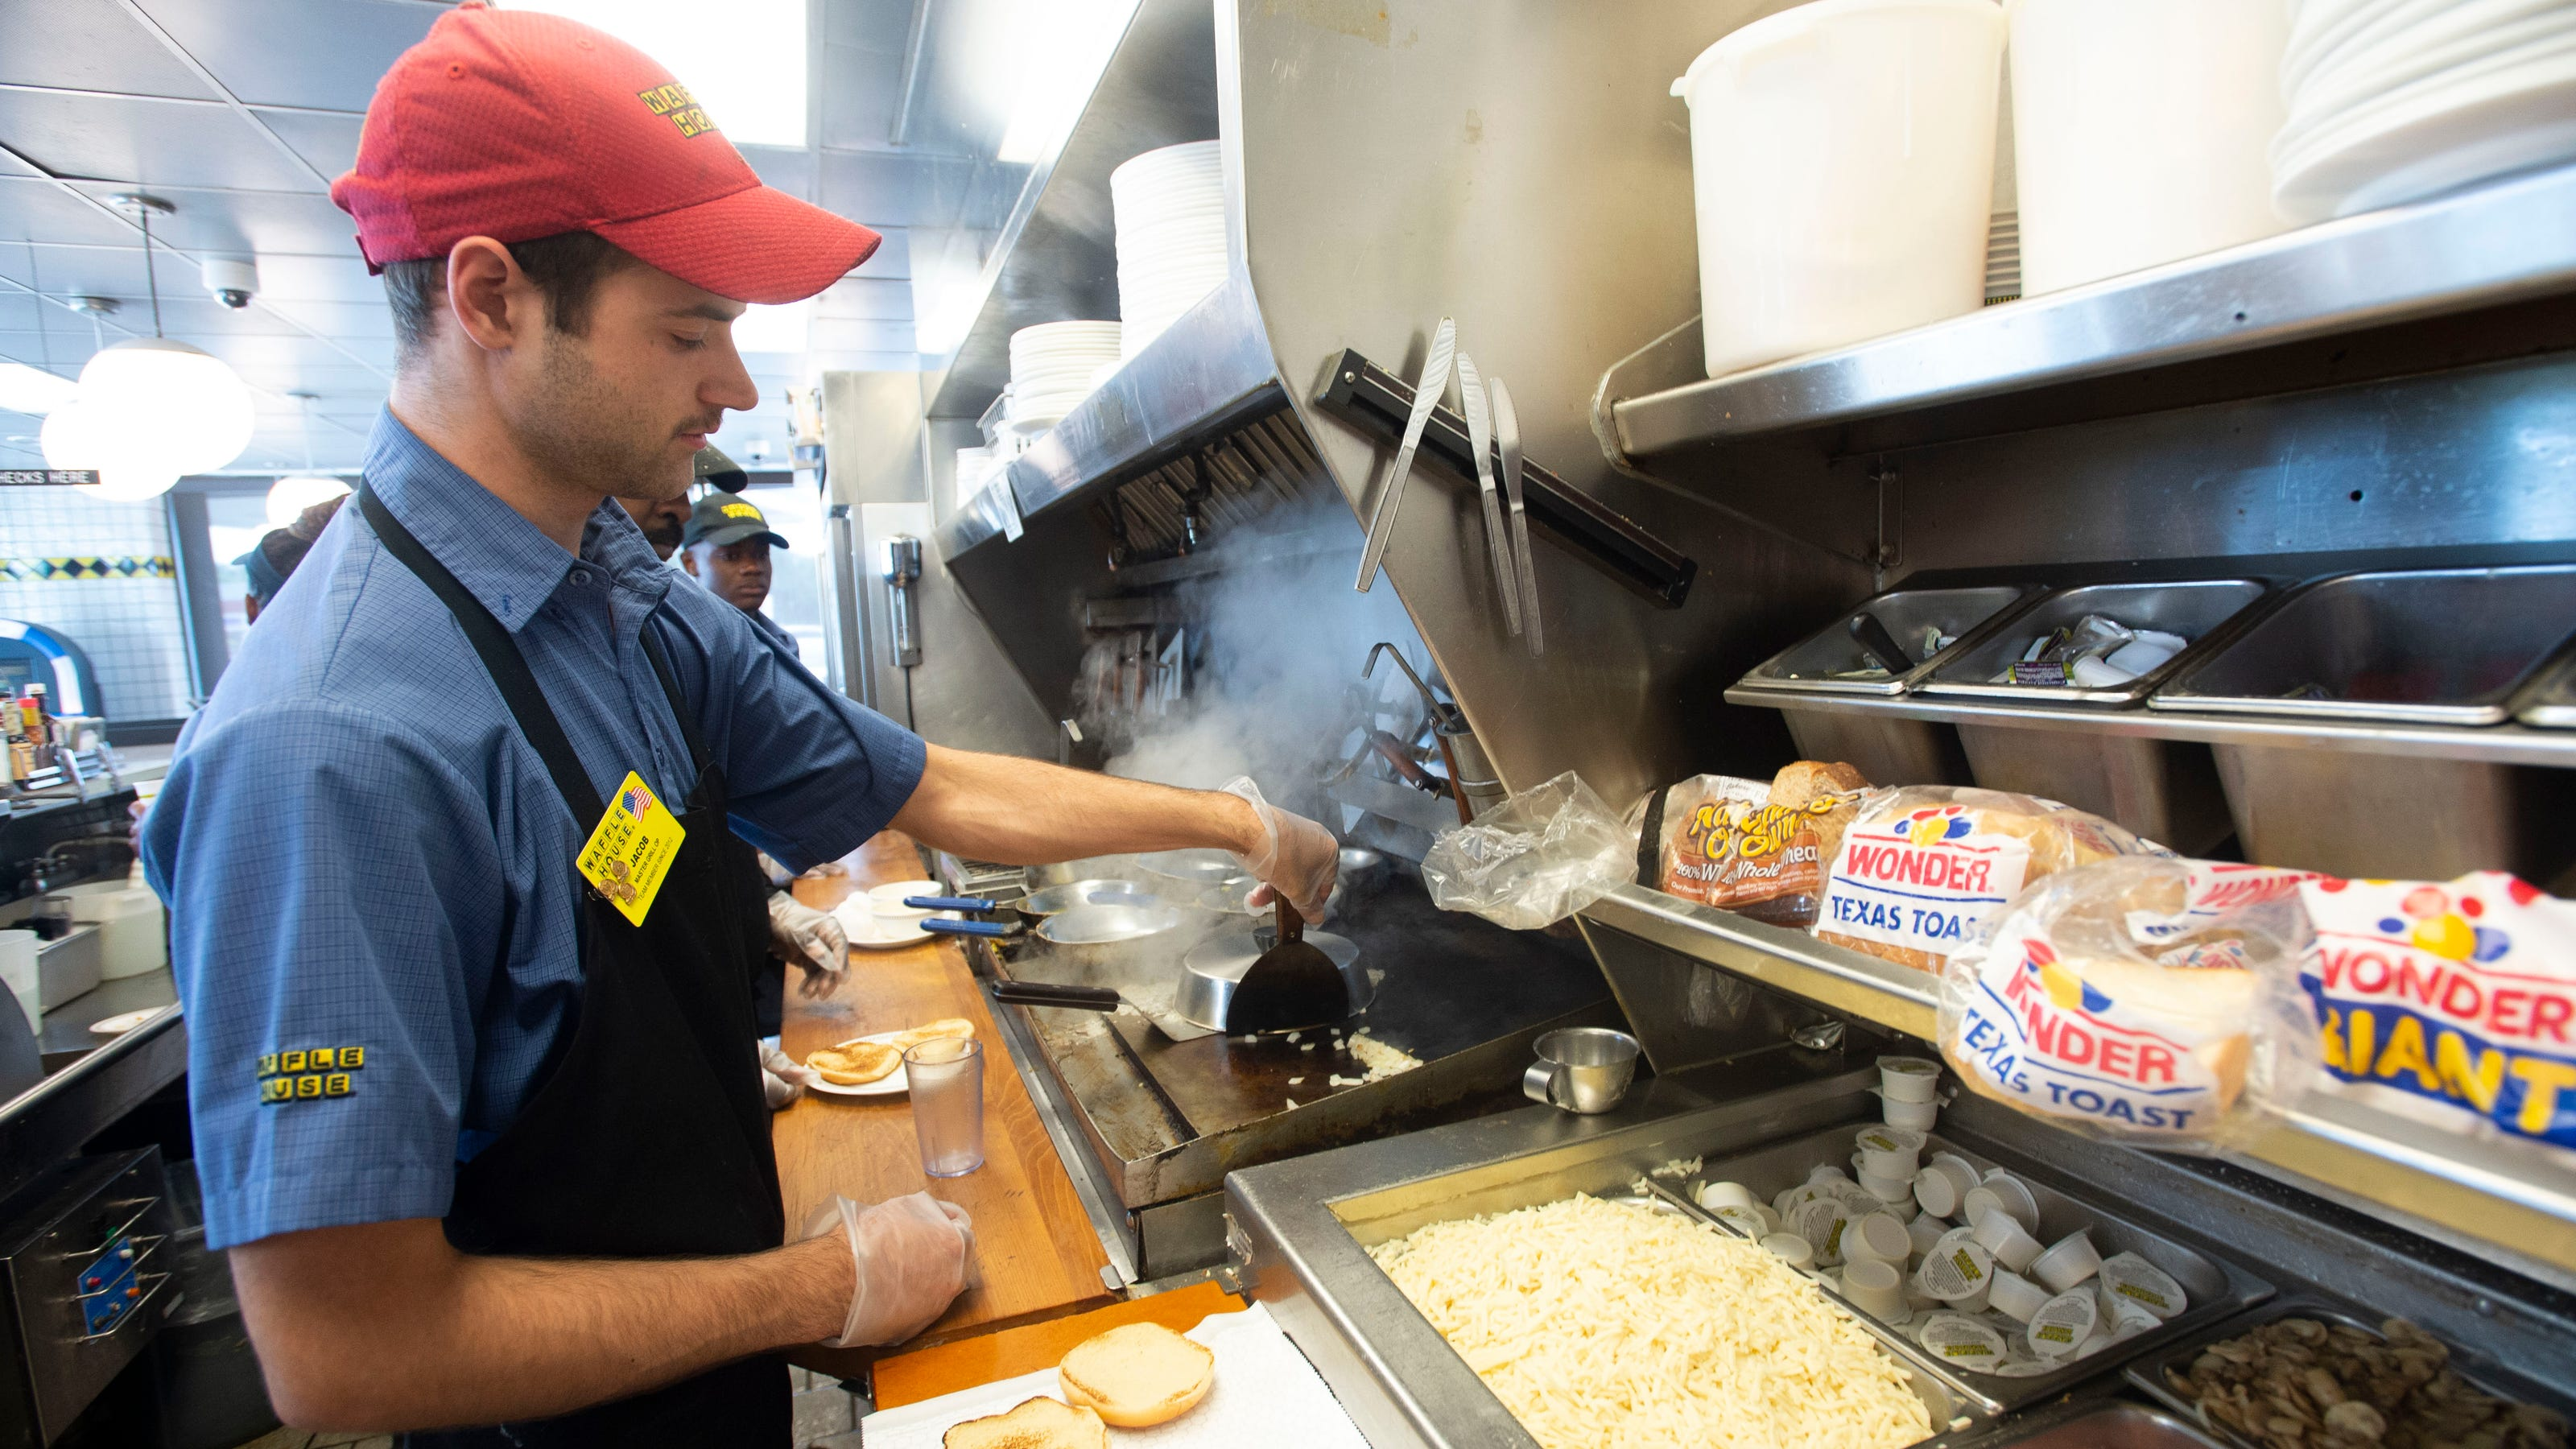 'Waffle House Index' is a real thing during disasters. How does the restaurant chain do it?